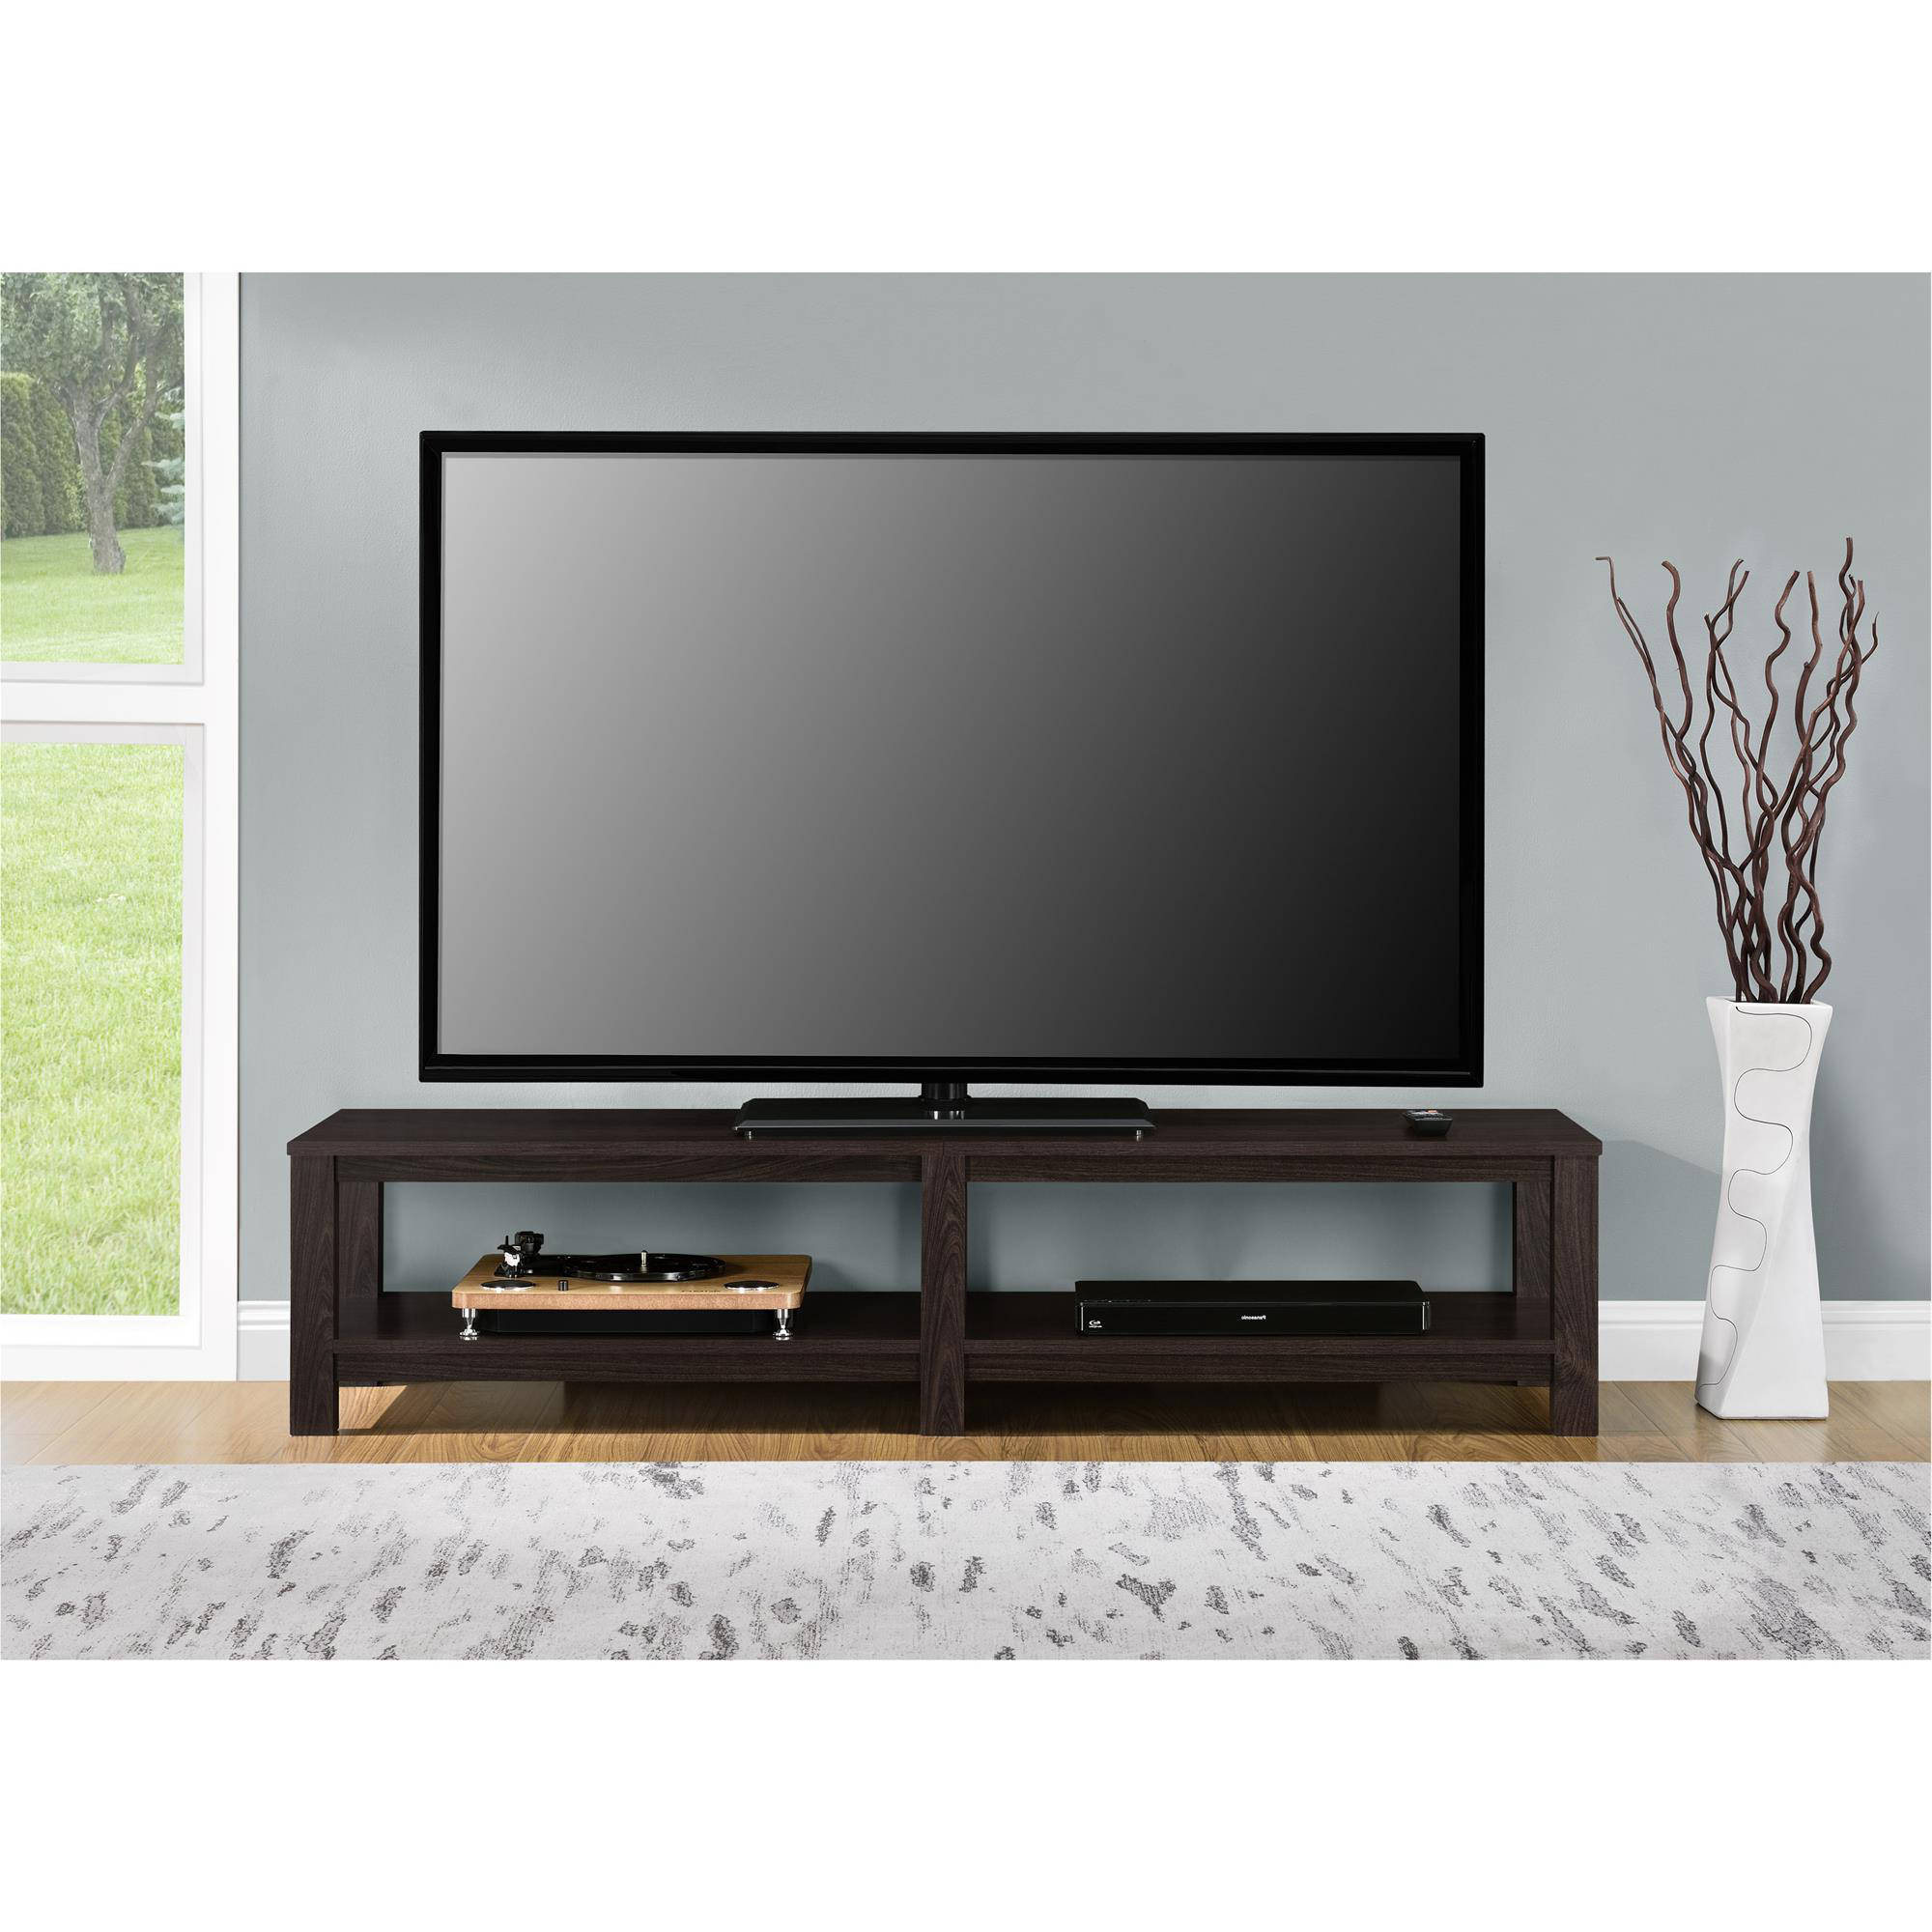 Trendy 65 Inch Tv Media Entertainment Stand Console Table Mount Intended For Mainstays 3 Door Tv Stands Console In Multiple Colors (View 4 of 10)